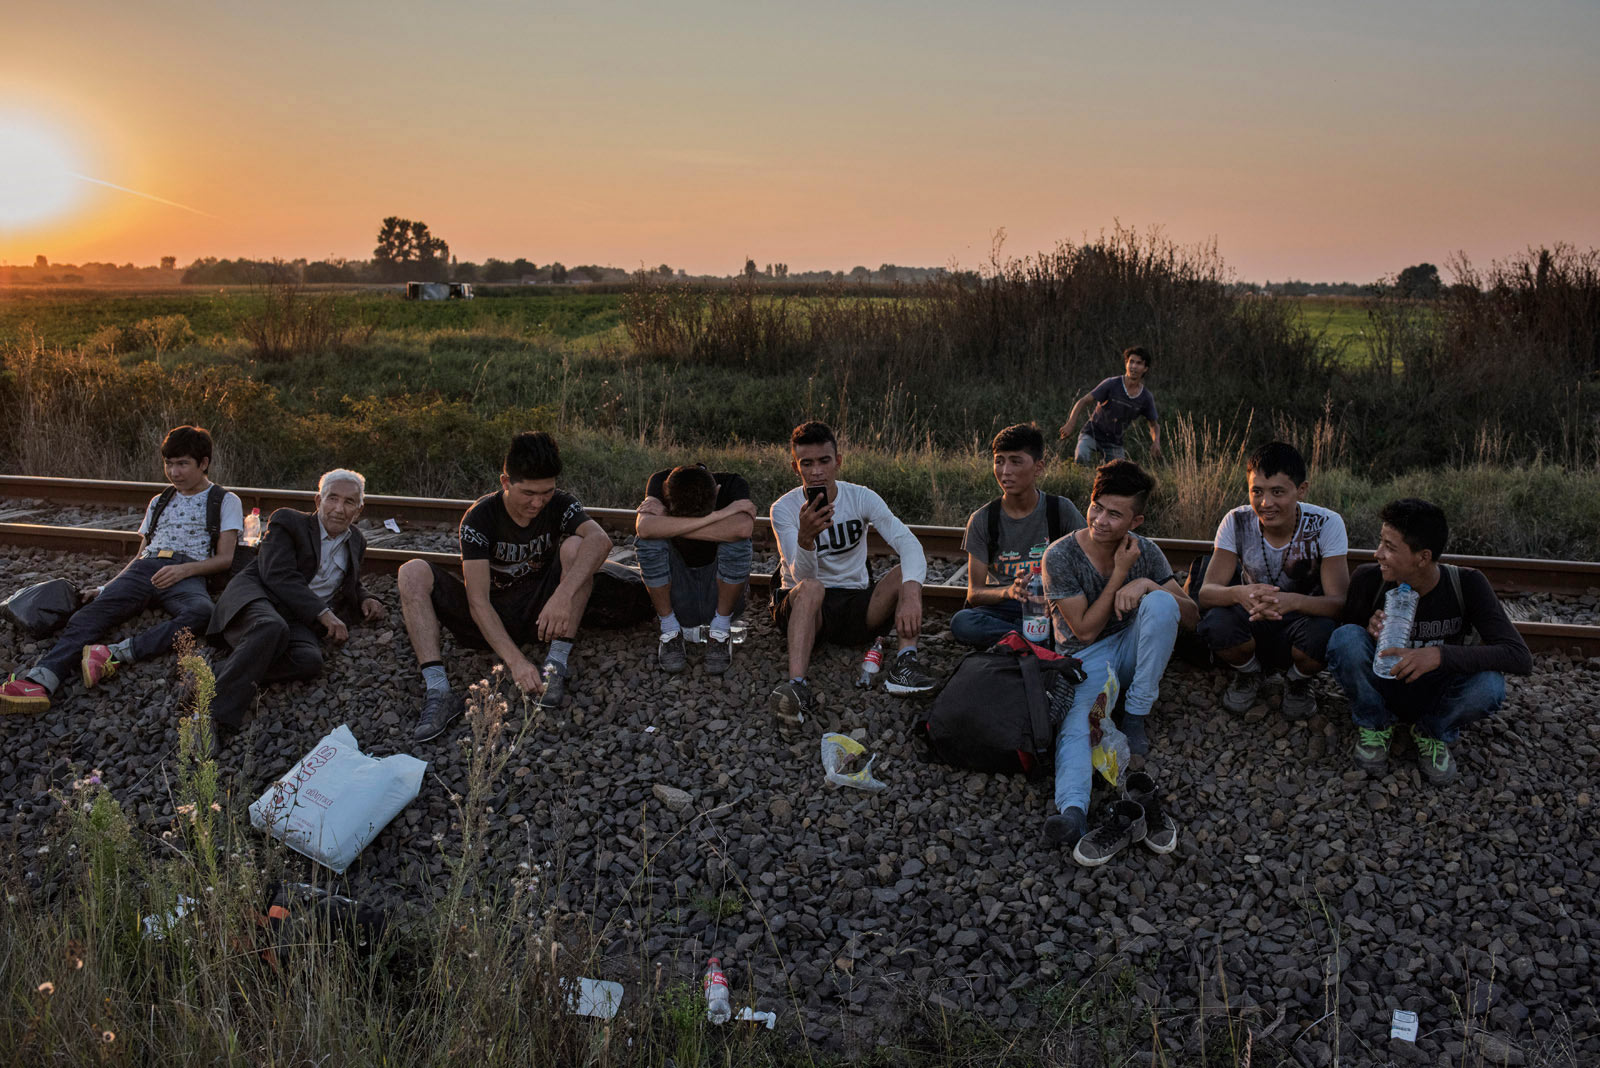 A group of migrants from Afghanistan takes a rest before crossing into the European Union through the border between Serbia and Hungary.                                Roszke, Hungary, Aug. 31, 2015.